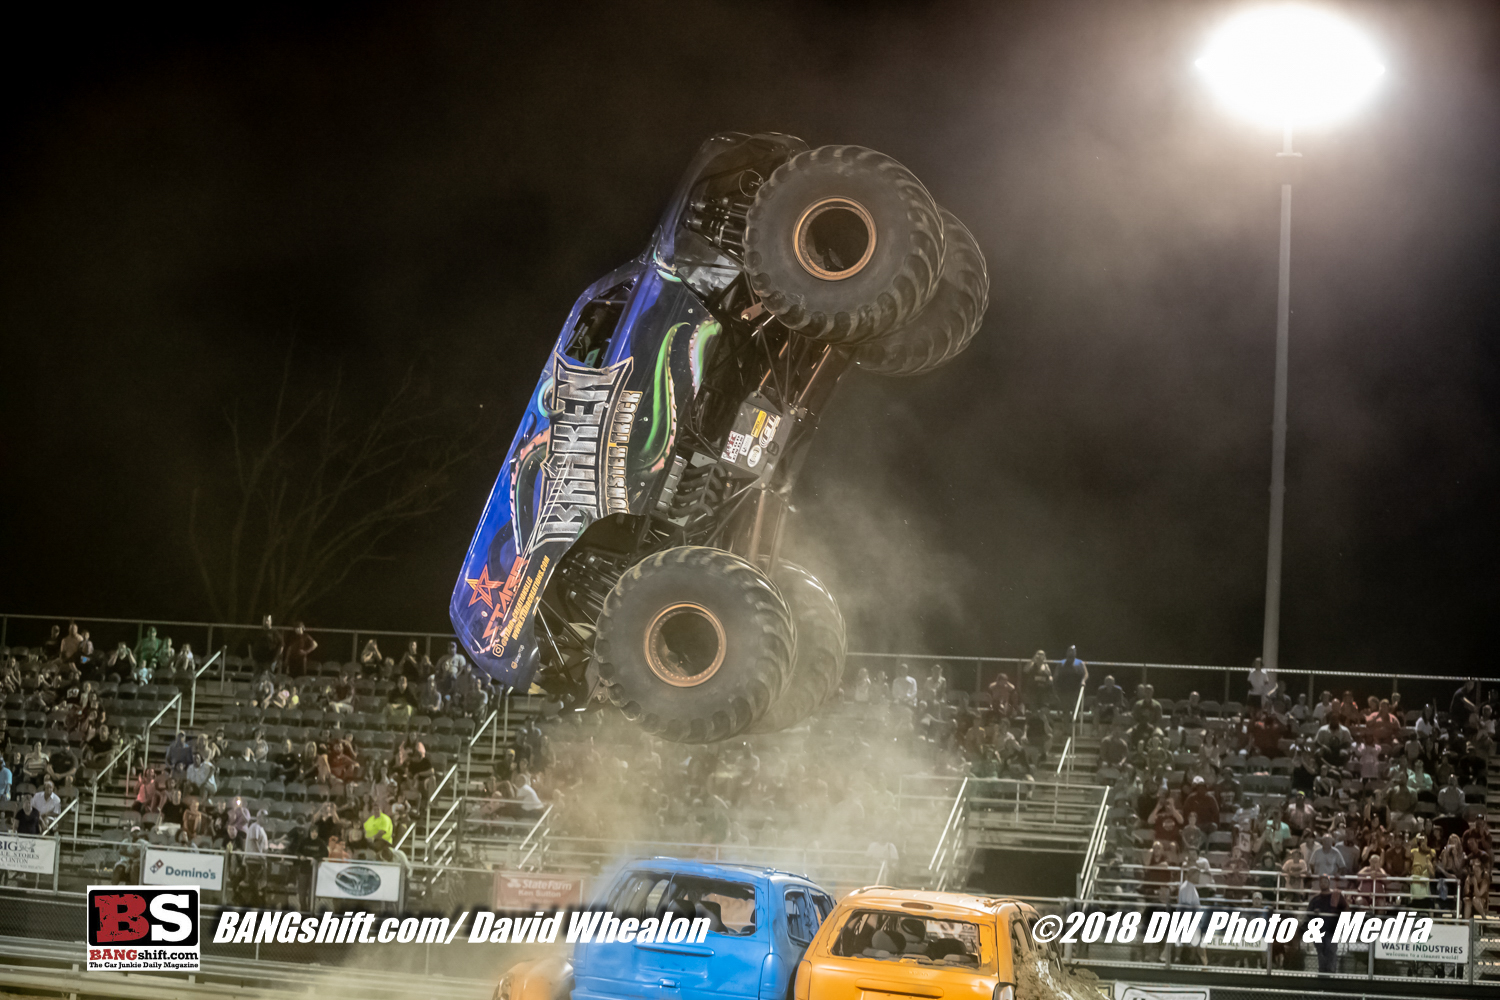 2018 GALOT Motorsports Park Monster Truck Throwdown Action Photos – High Flyin' Fun With Awesome Trucks